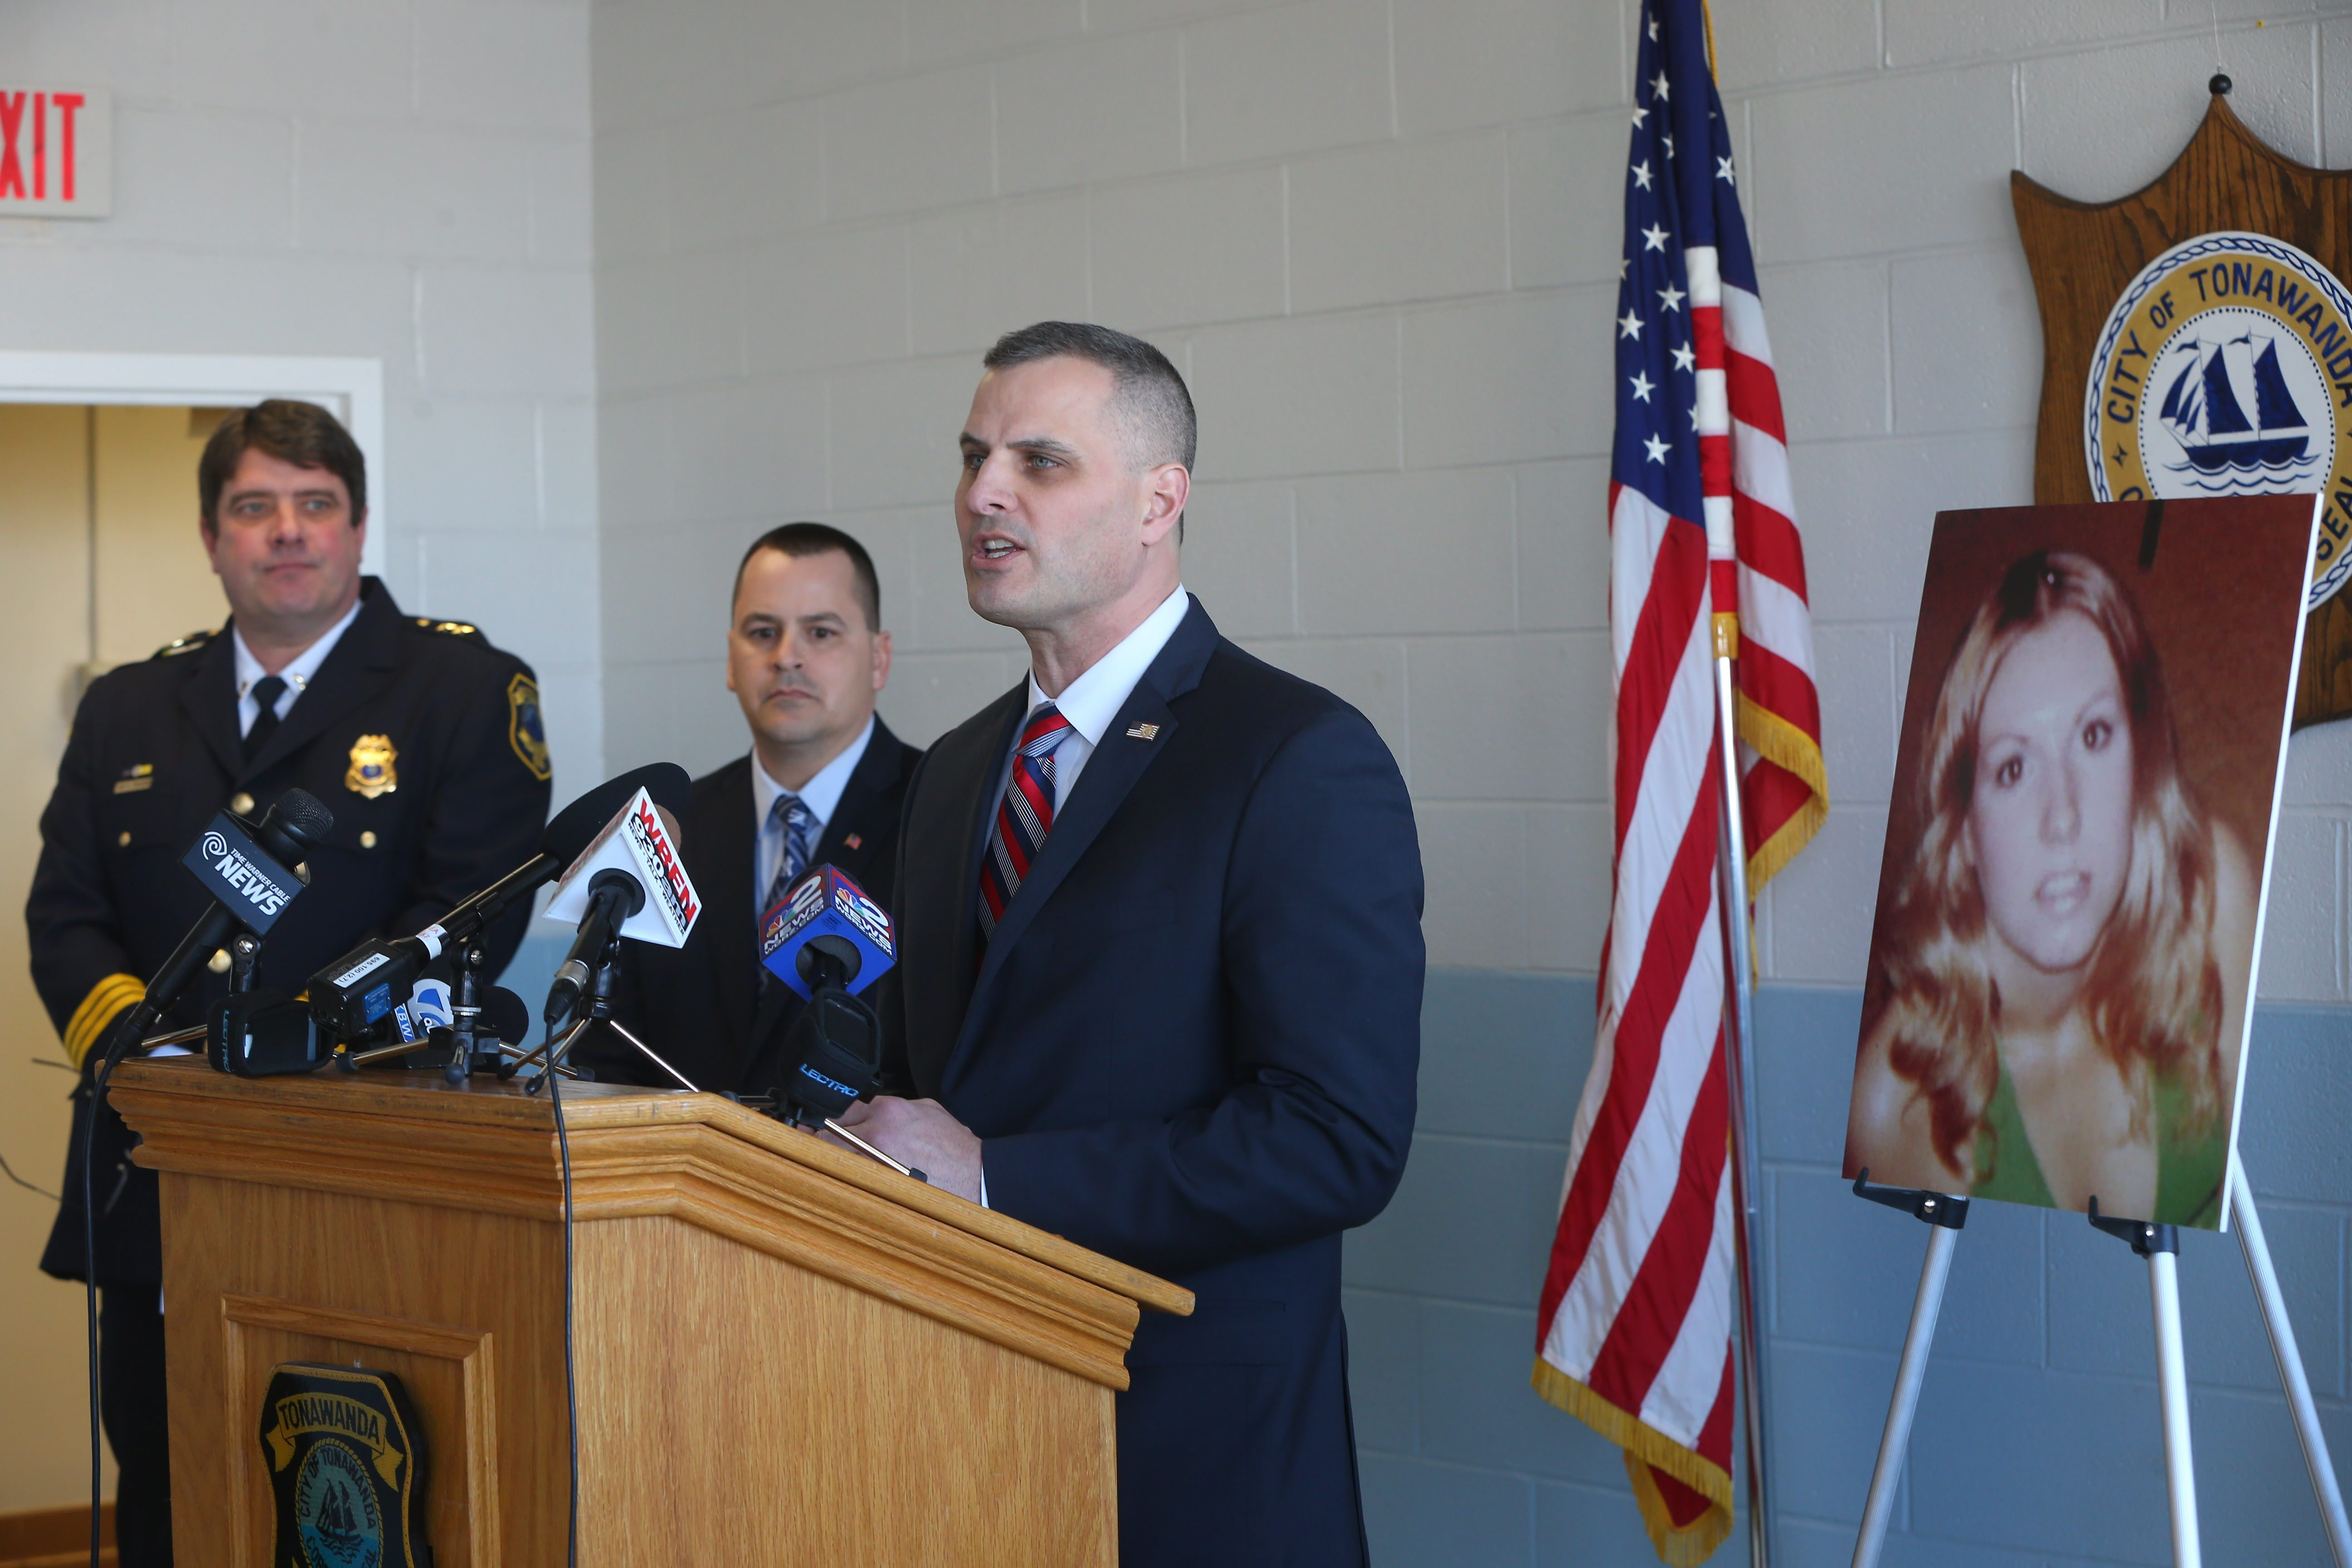 Brian Boetig, head of FBI office in Buffalo, speaks at news conference, joined by Tonawanda Police Chief William Strassburg, left, and Mayor Rick Davis.